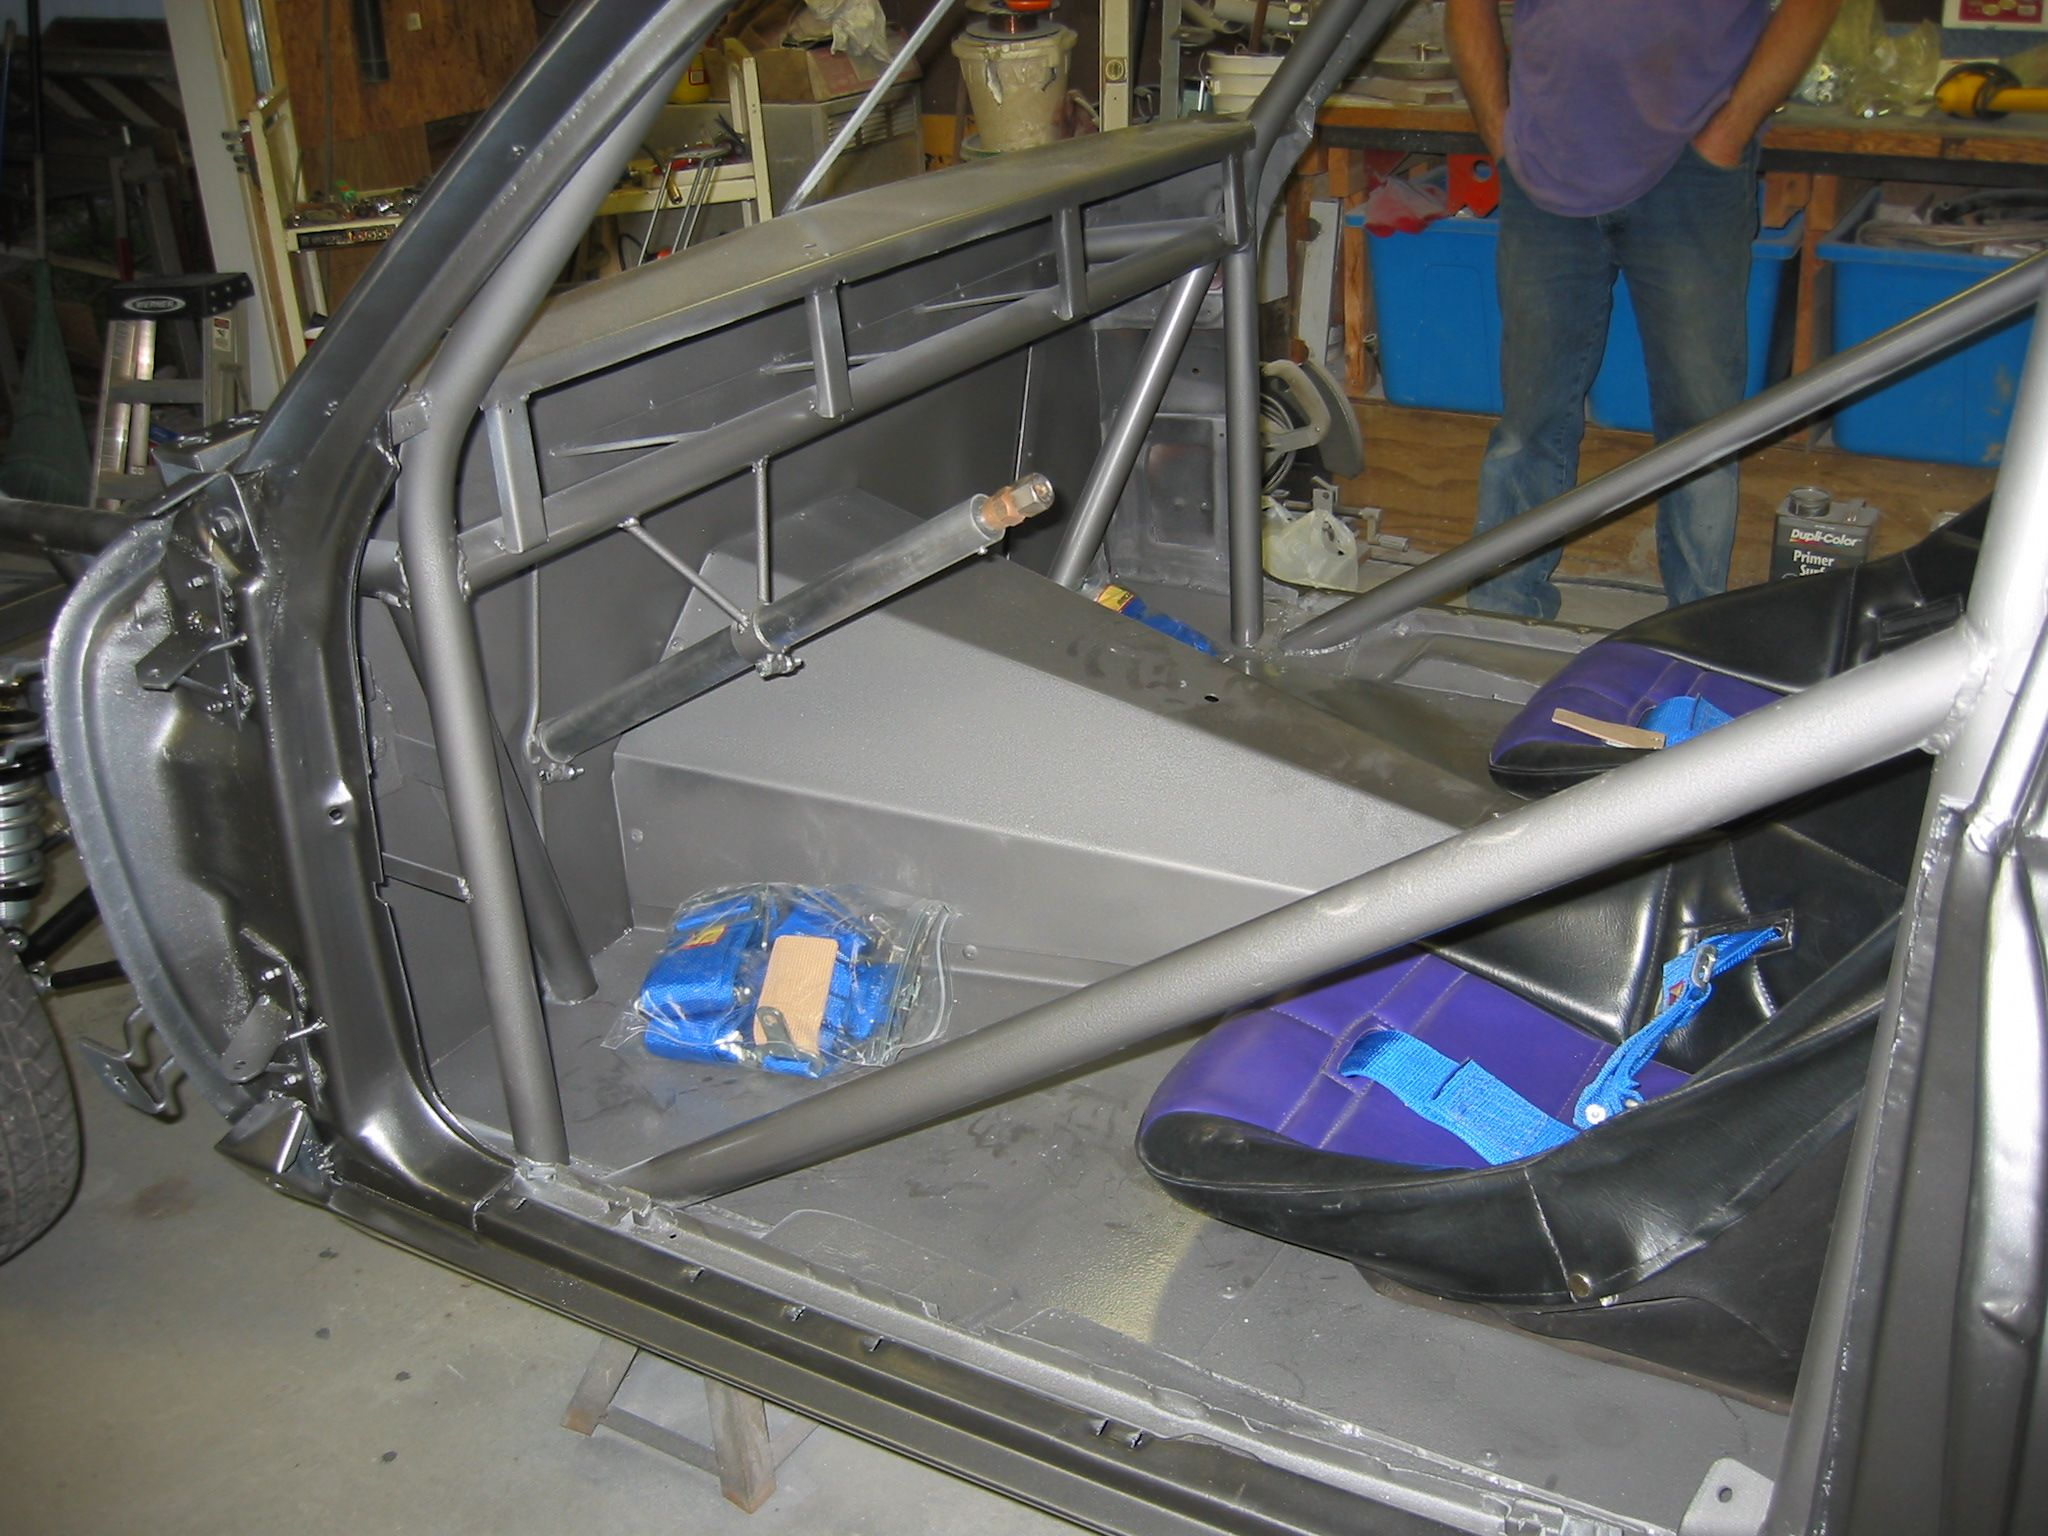 Driver Side Look Inside Of The Car Sheet Metal Work Firewall Steering Column And Roll Bar Sheet Metal Work Metal Working Steering Column